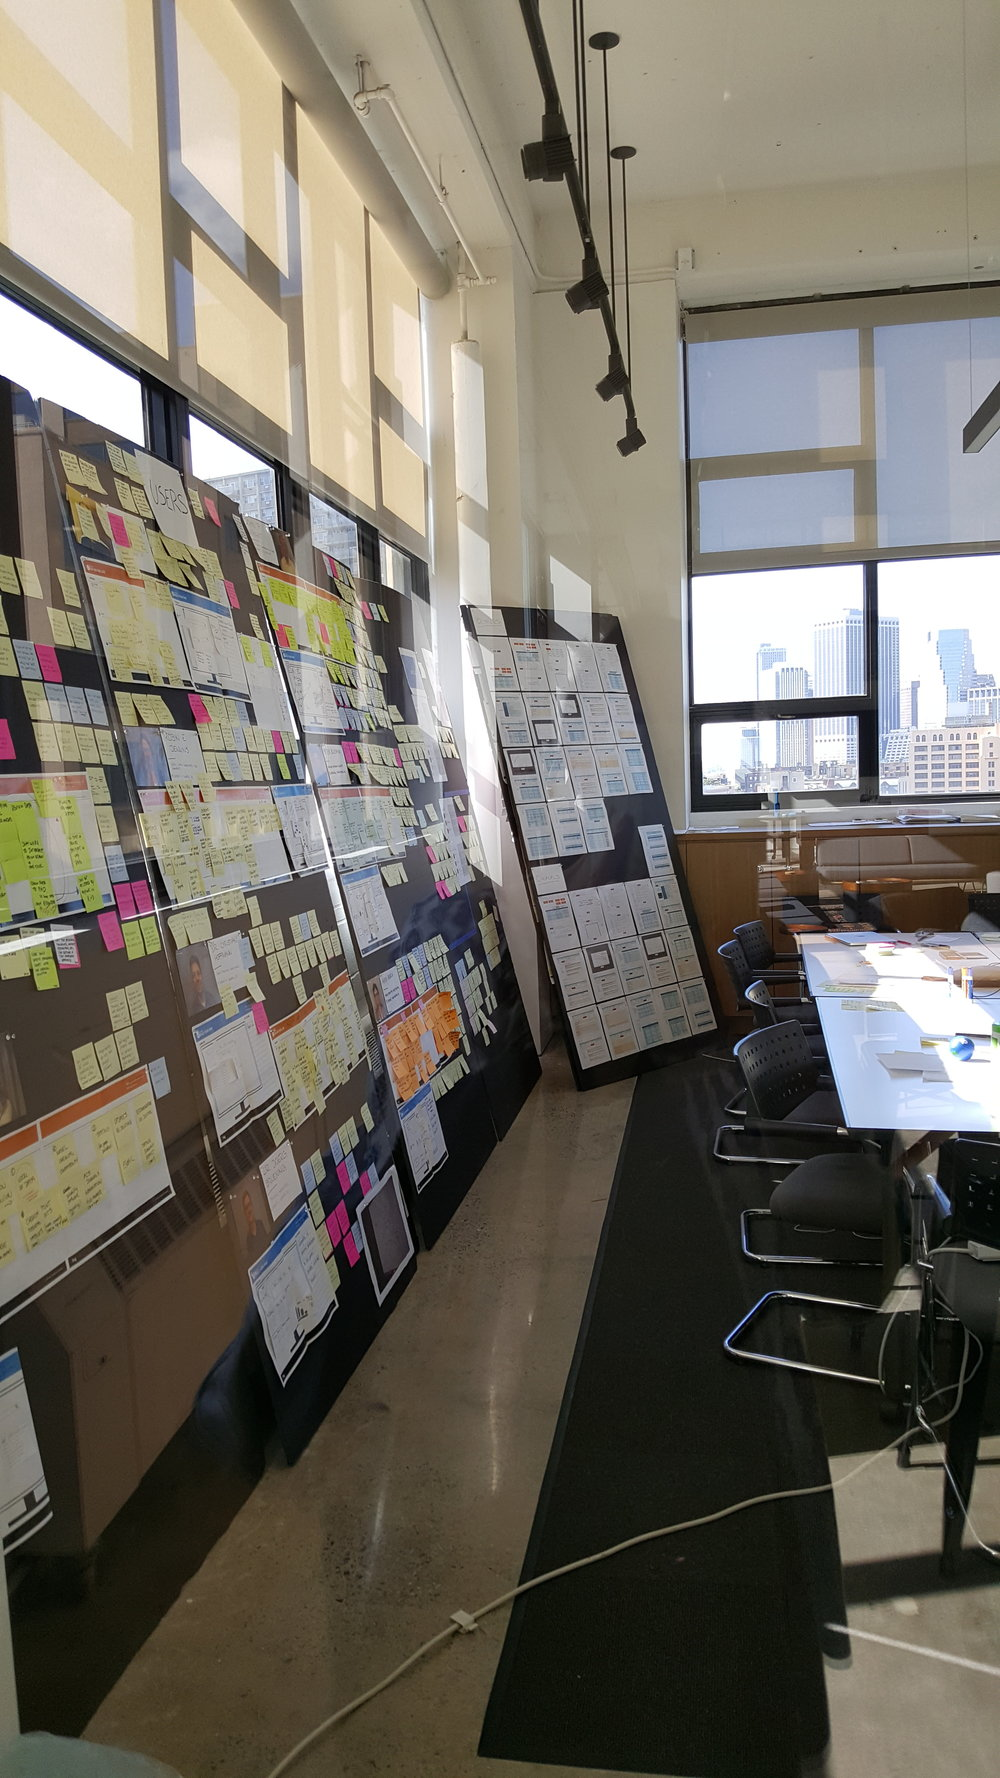 A glimpse of the ideation process at frog in one of the medium-sized private team spaces (unfortunate reflection because we had to shoot through the glass).